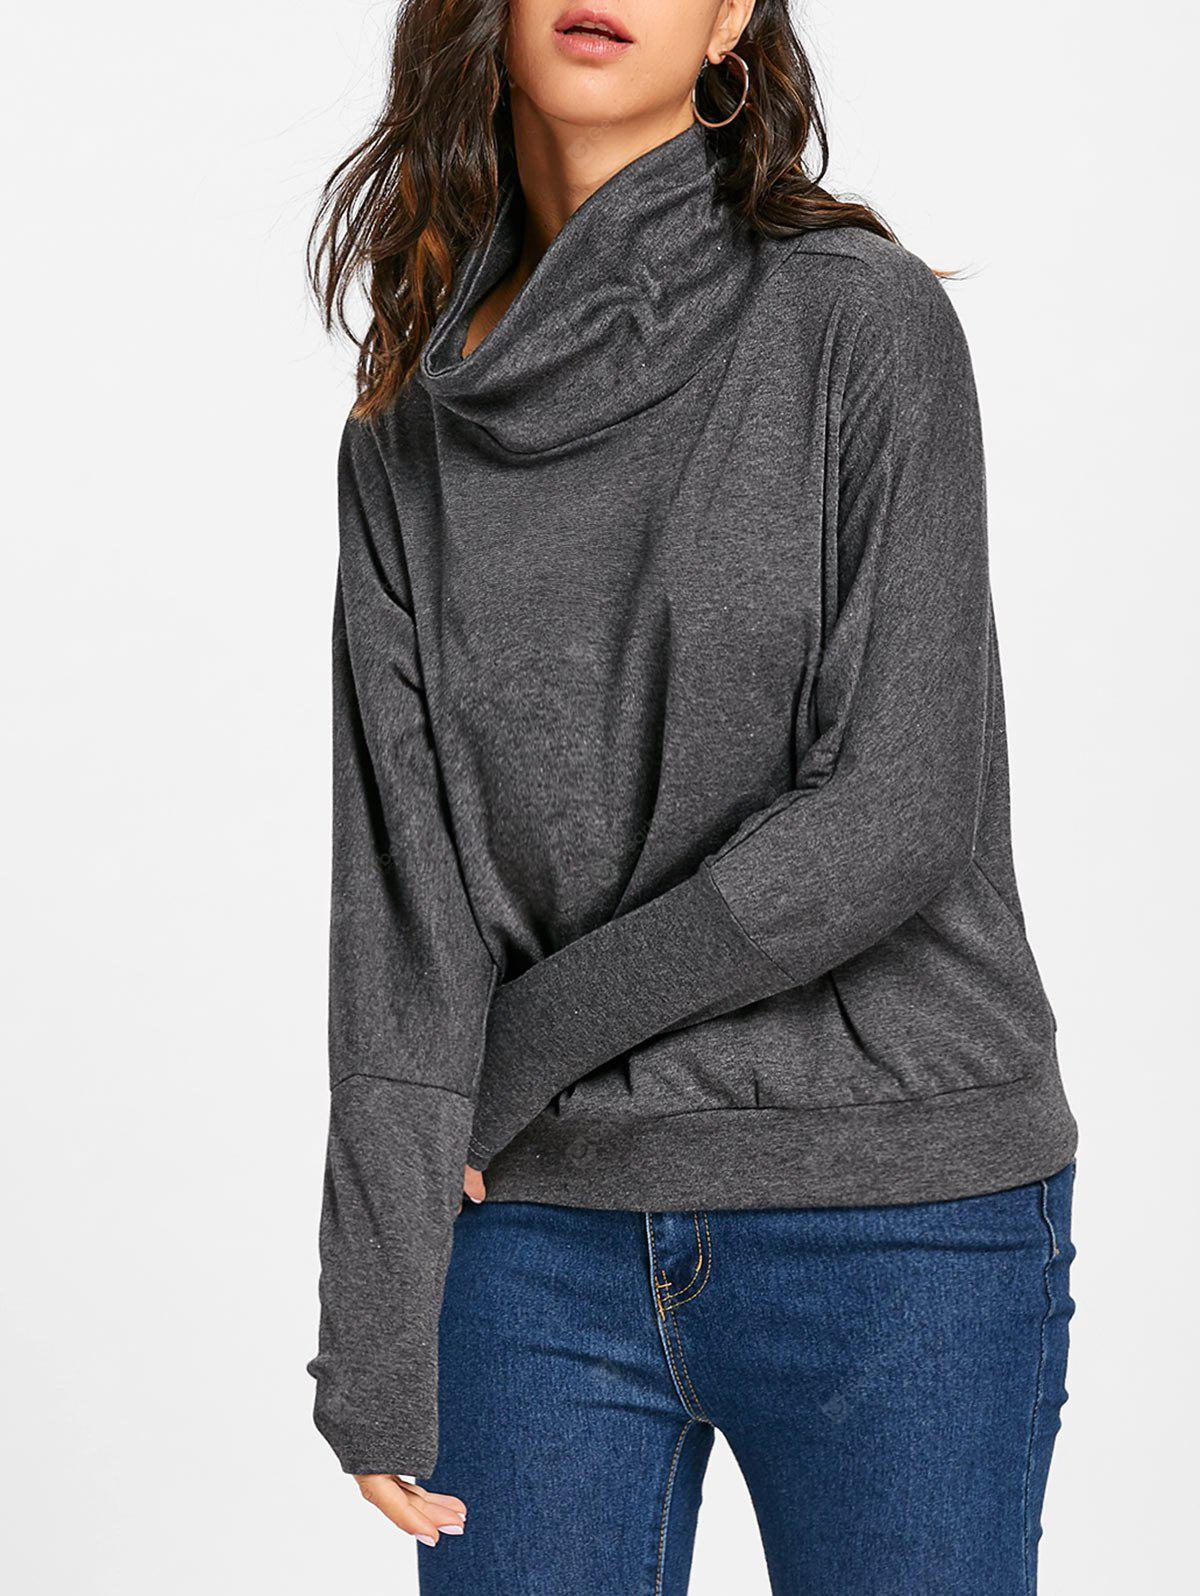 Buttons Cowl Neck Batwing Sleeve Top